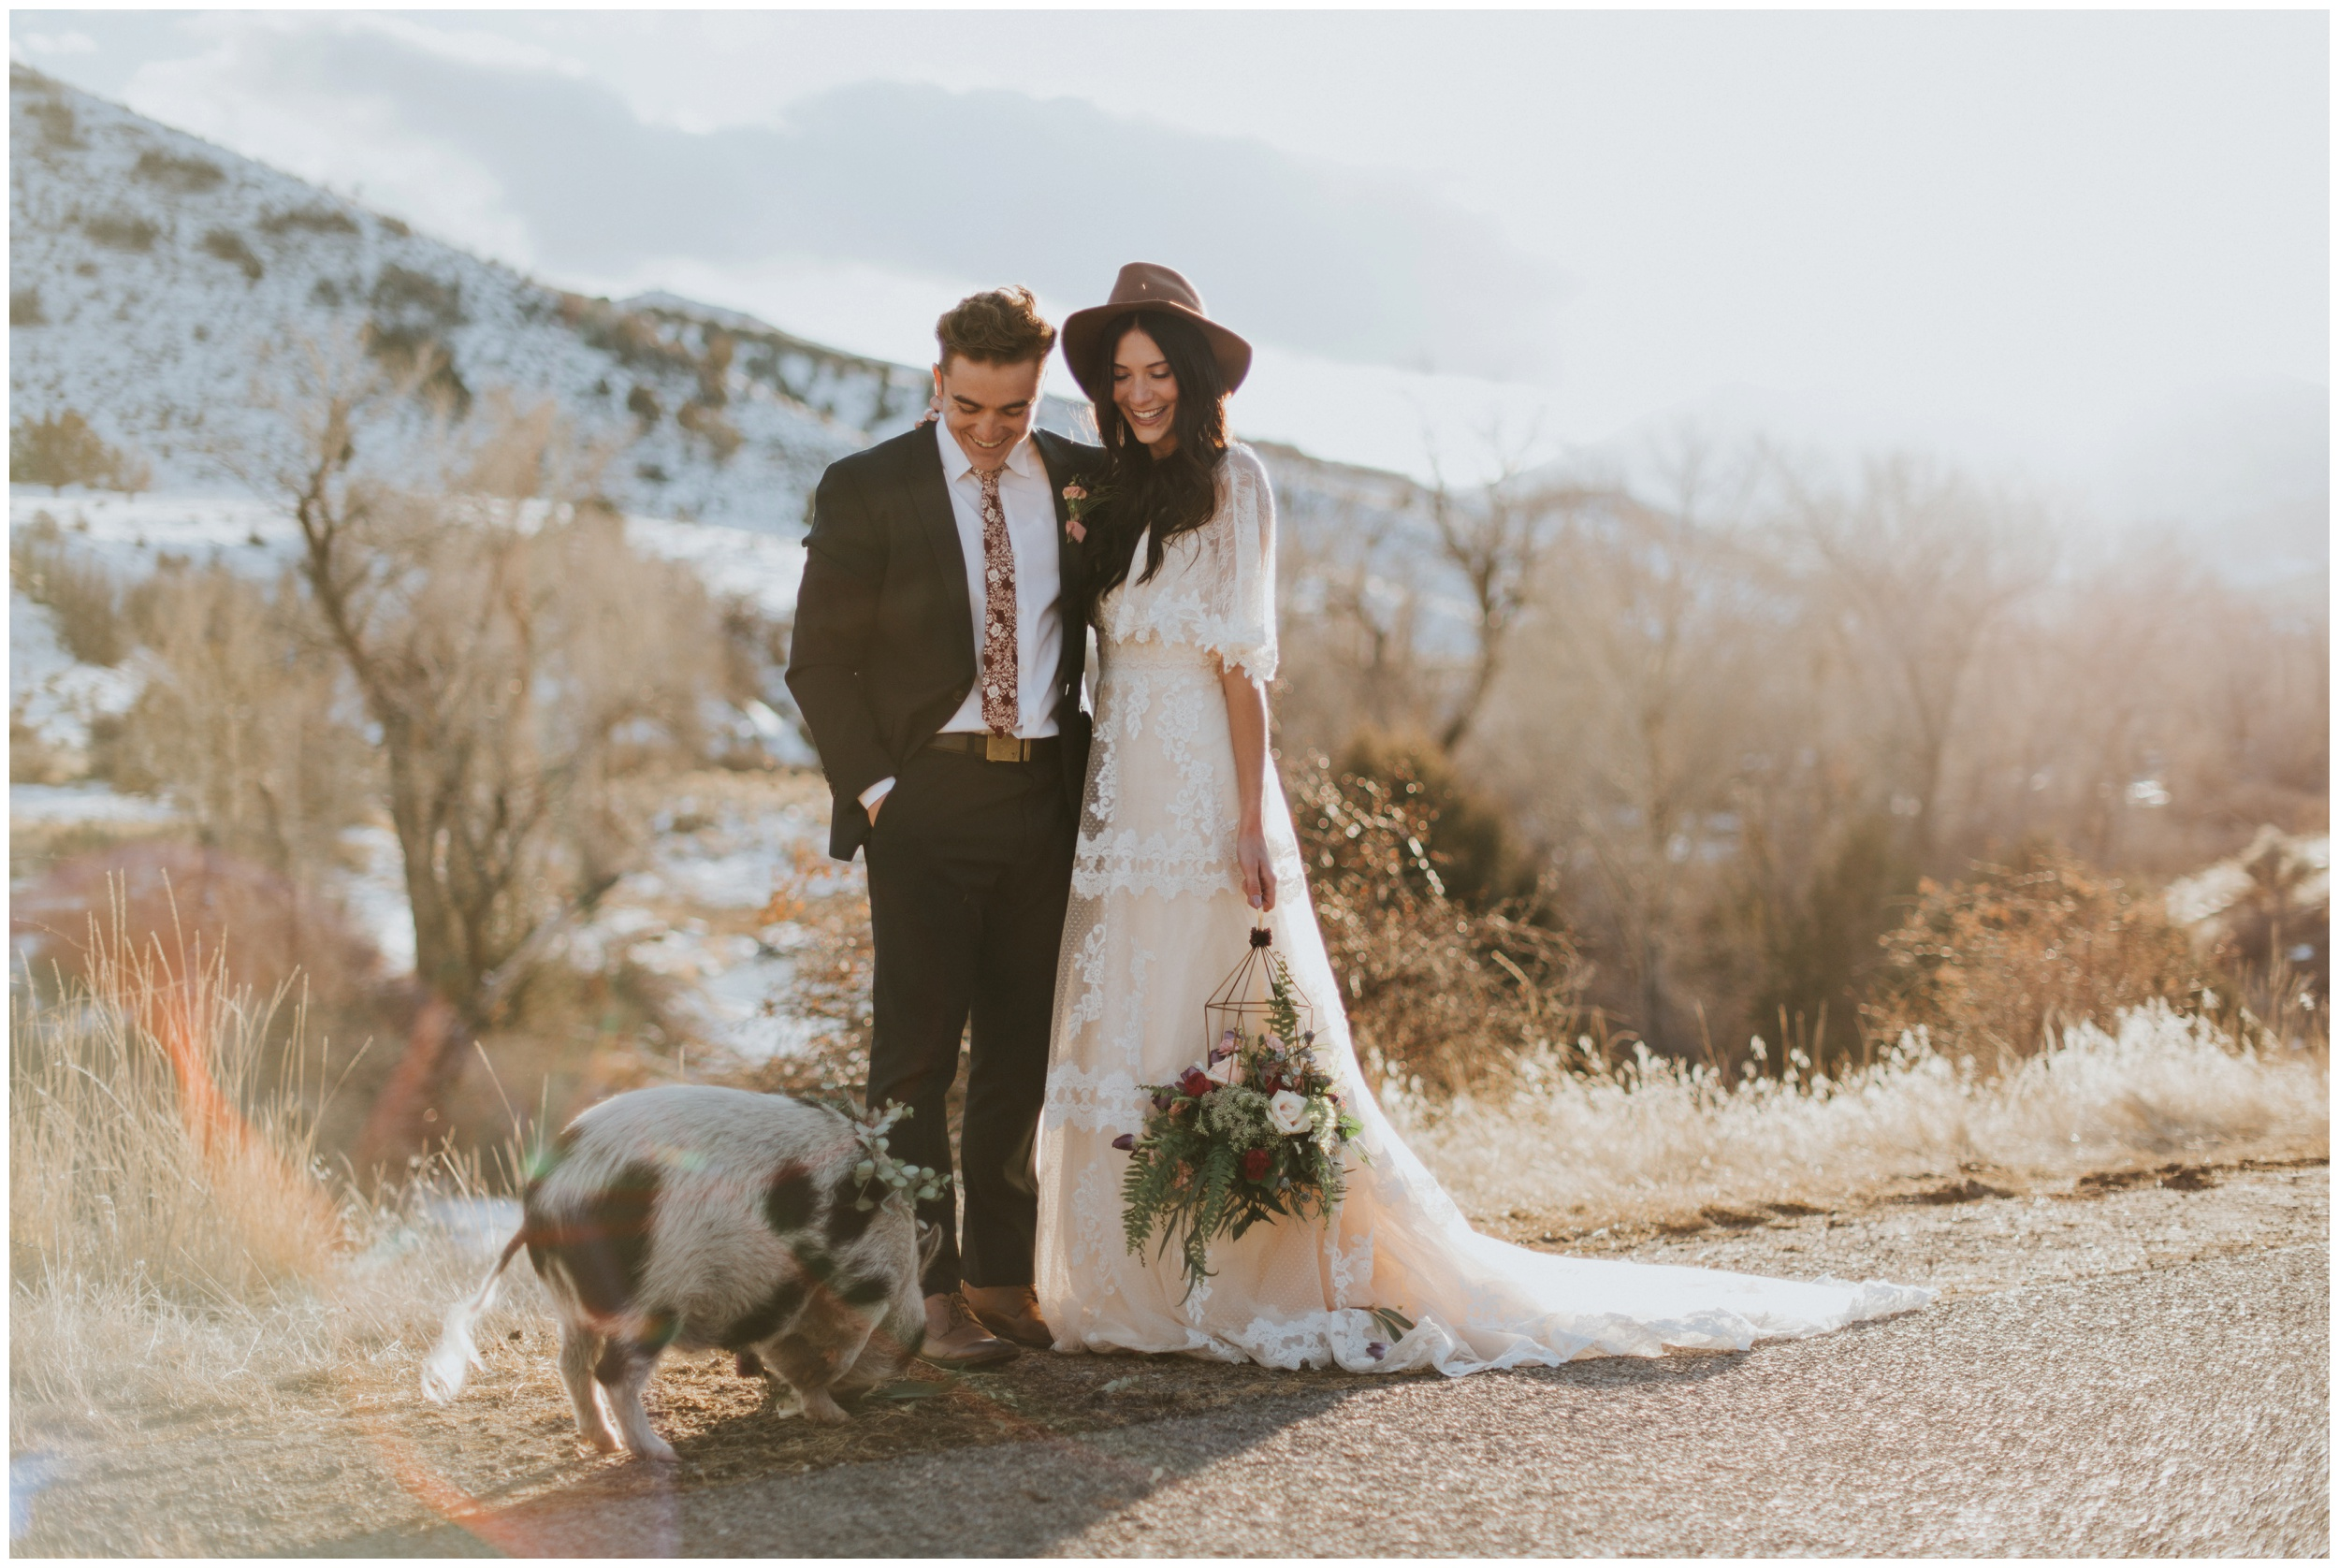 redrockutah-idahophotographer-utahphotographer-wedding-88.jpg